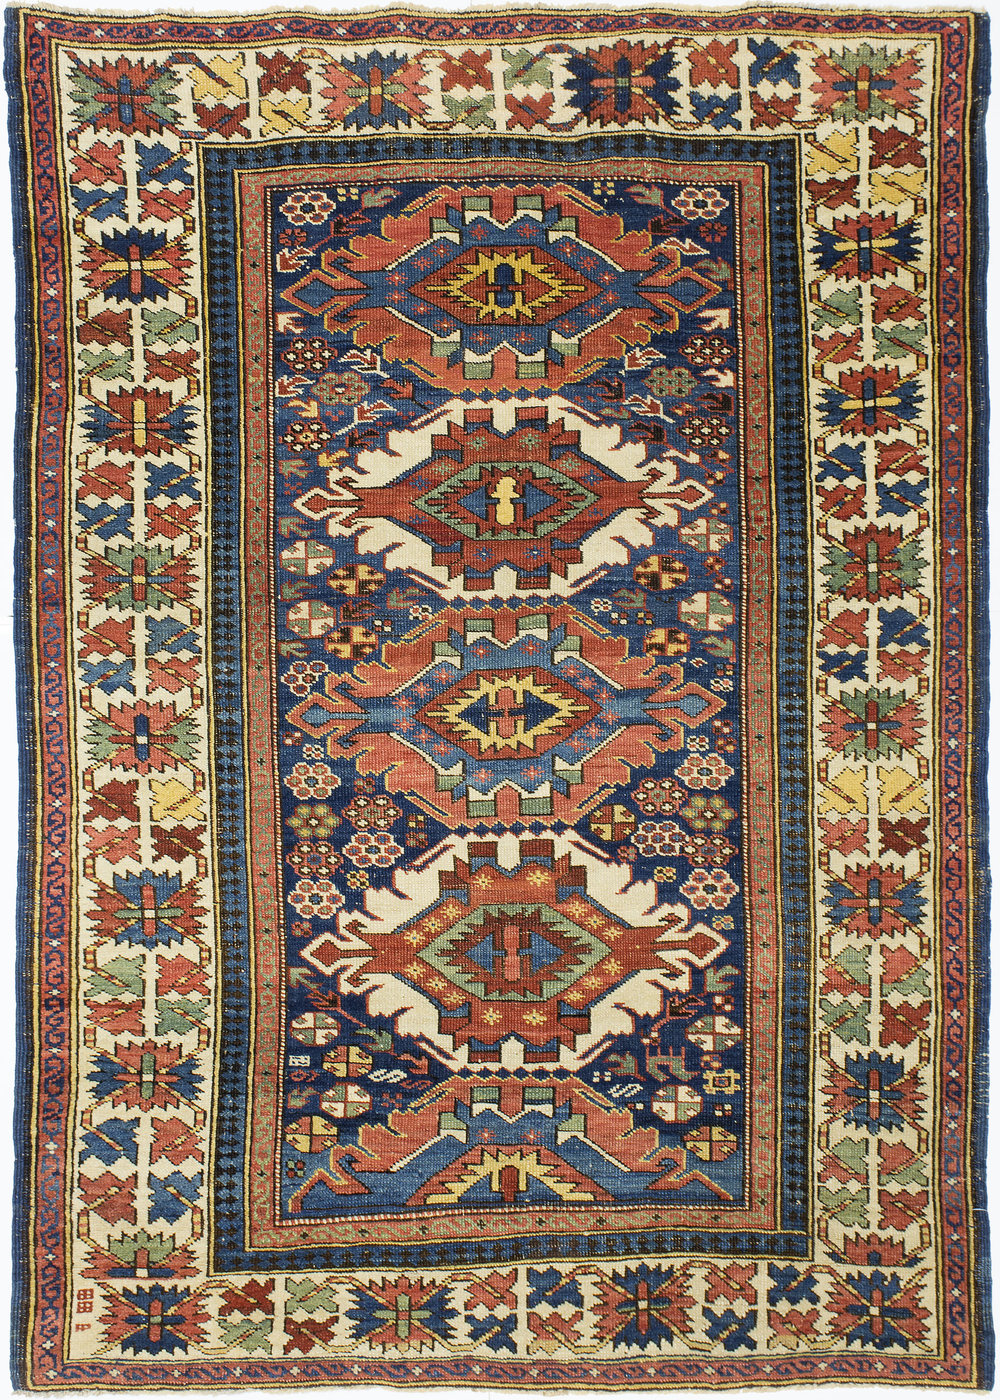 Kuba Rug 14922a M Topalian Inc Sales And Appraisals Of Fine